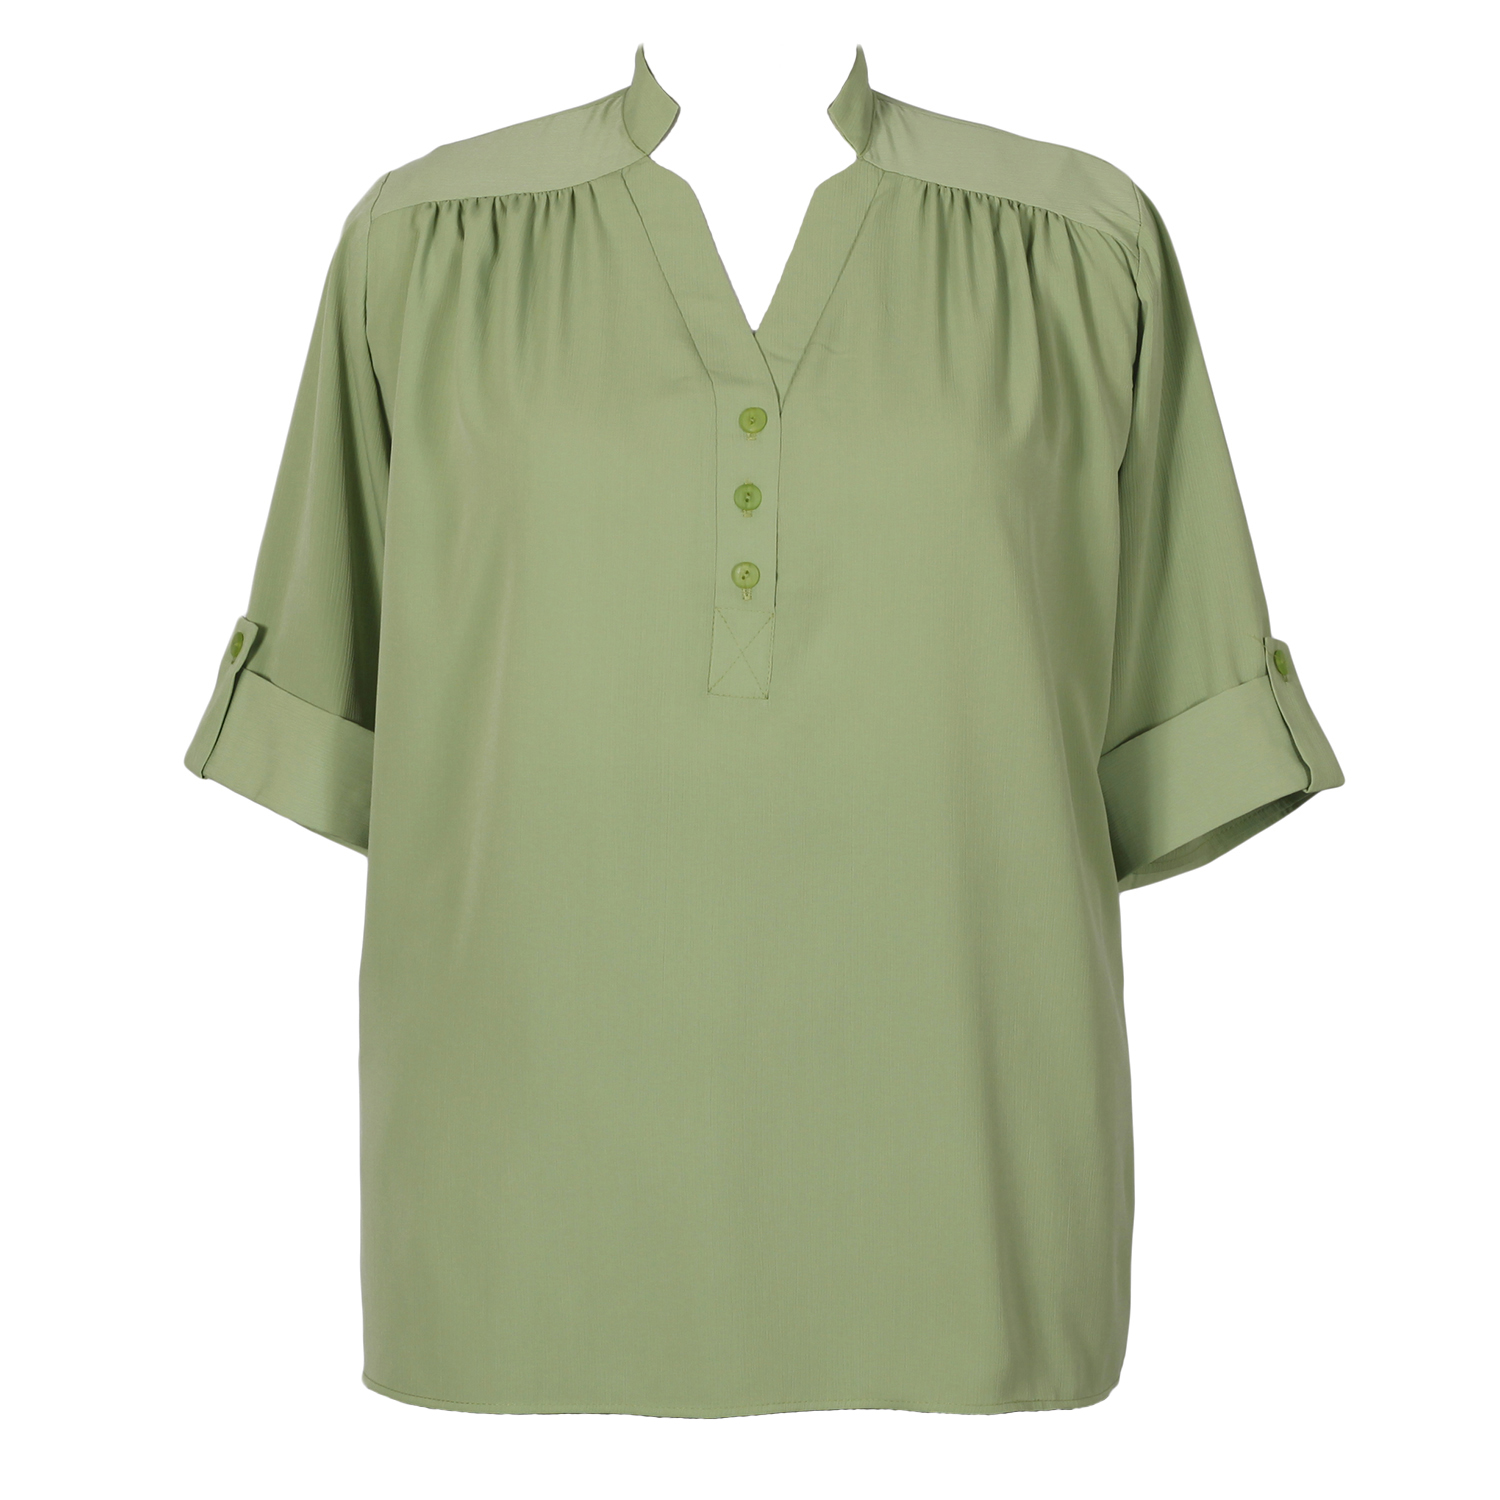 A Personal Touch Kiwi Green Pullover Placket Blouse - Plus Size Woman's Blouse - 0x - Clothing ...